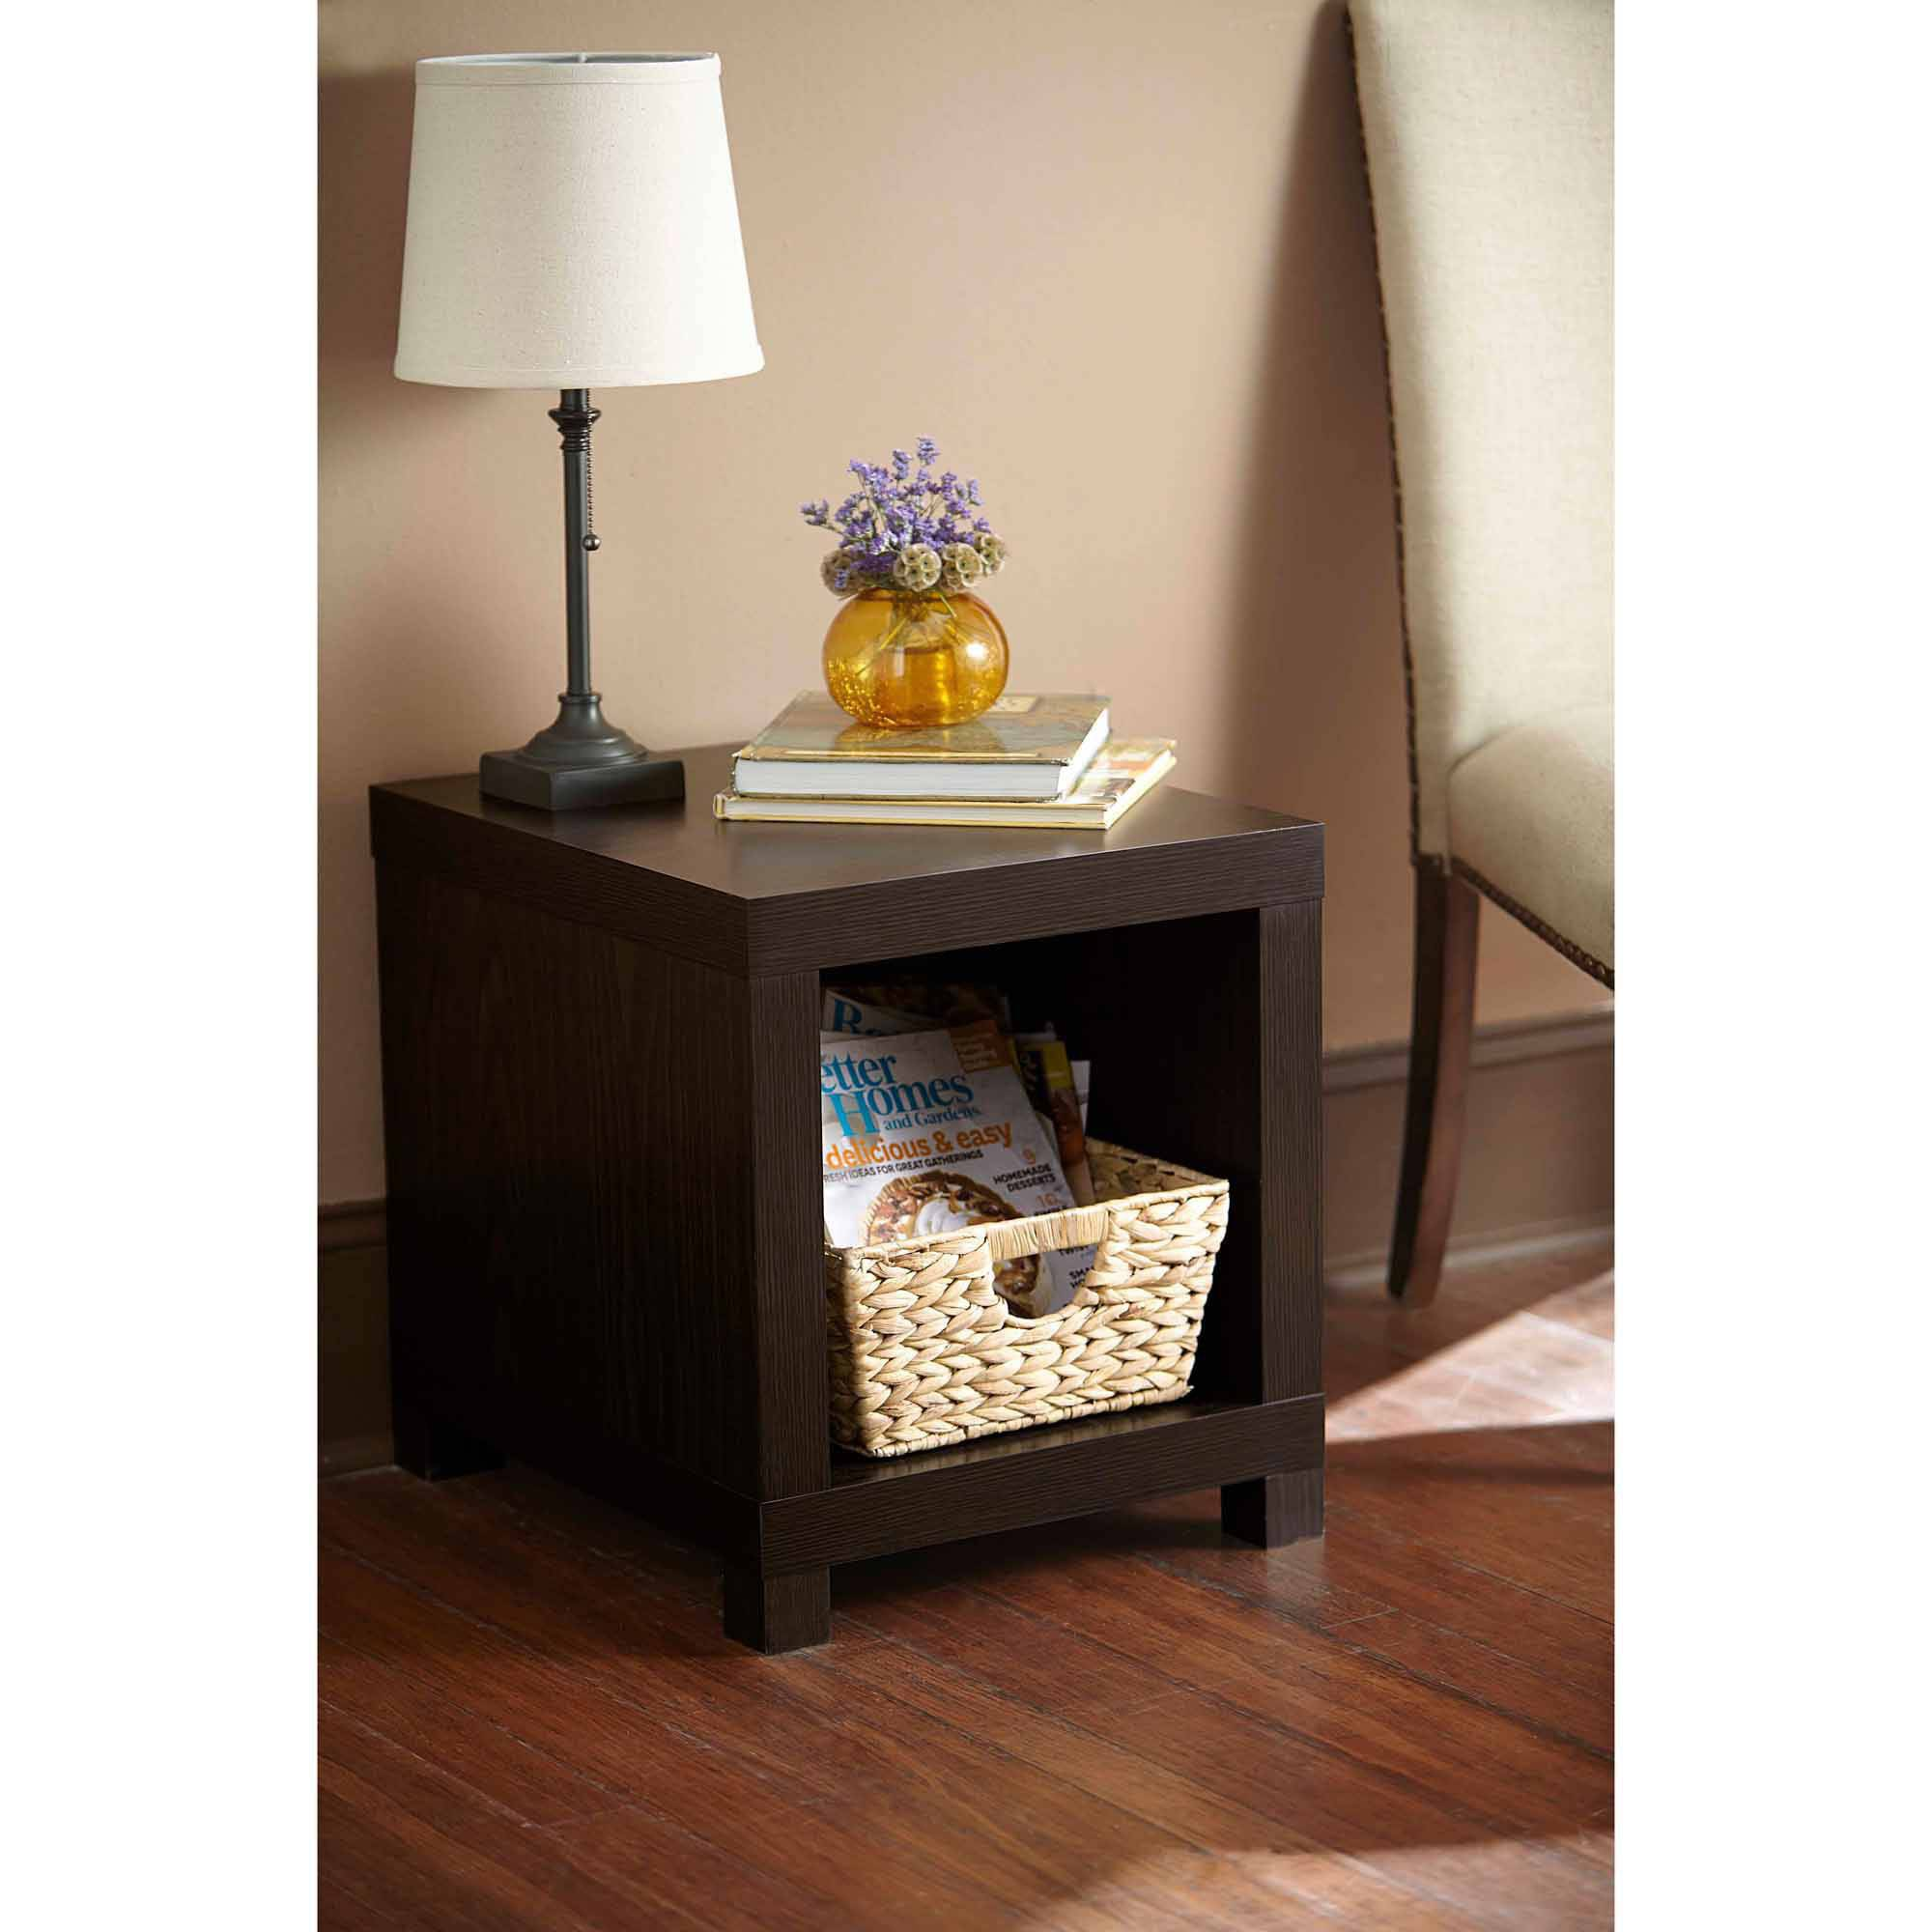 better homes gardens accent table multiple colors storage black room essentials mosaic coffee wood and glass nest tables iron outdoor chairs hampton bay patio furniture cushions